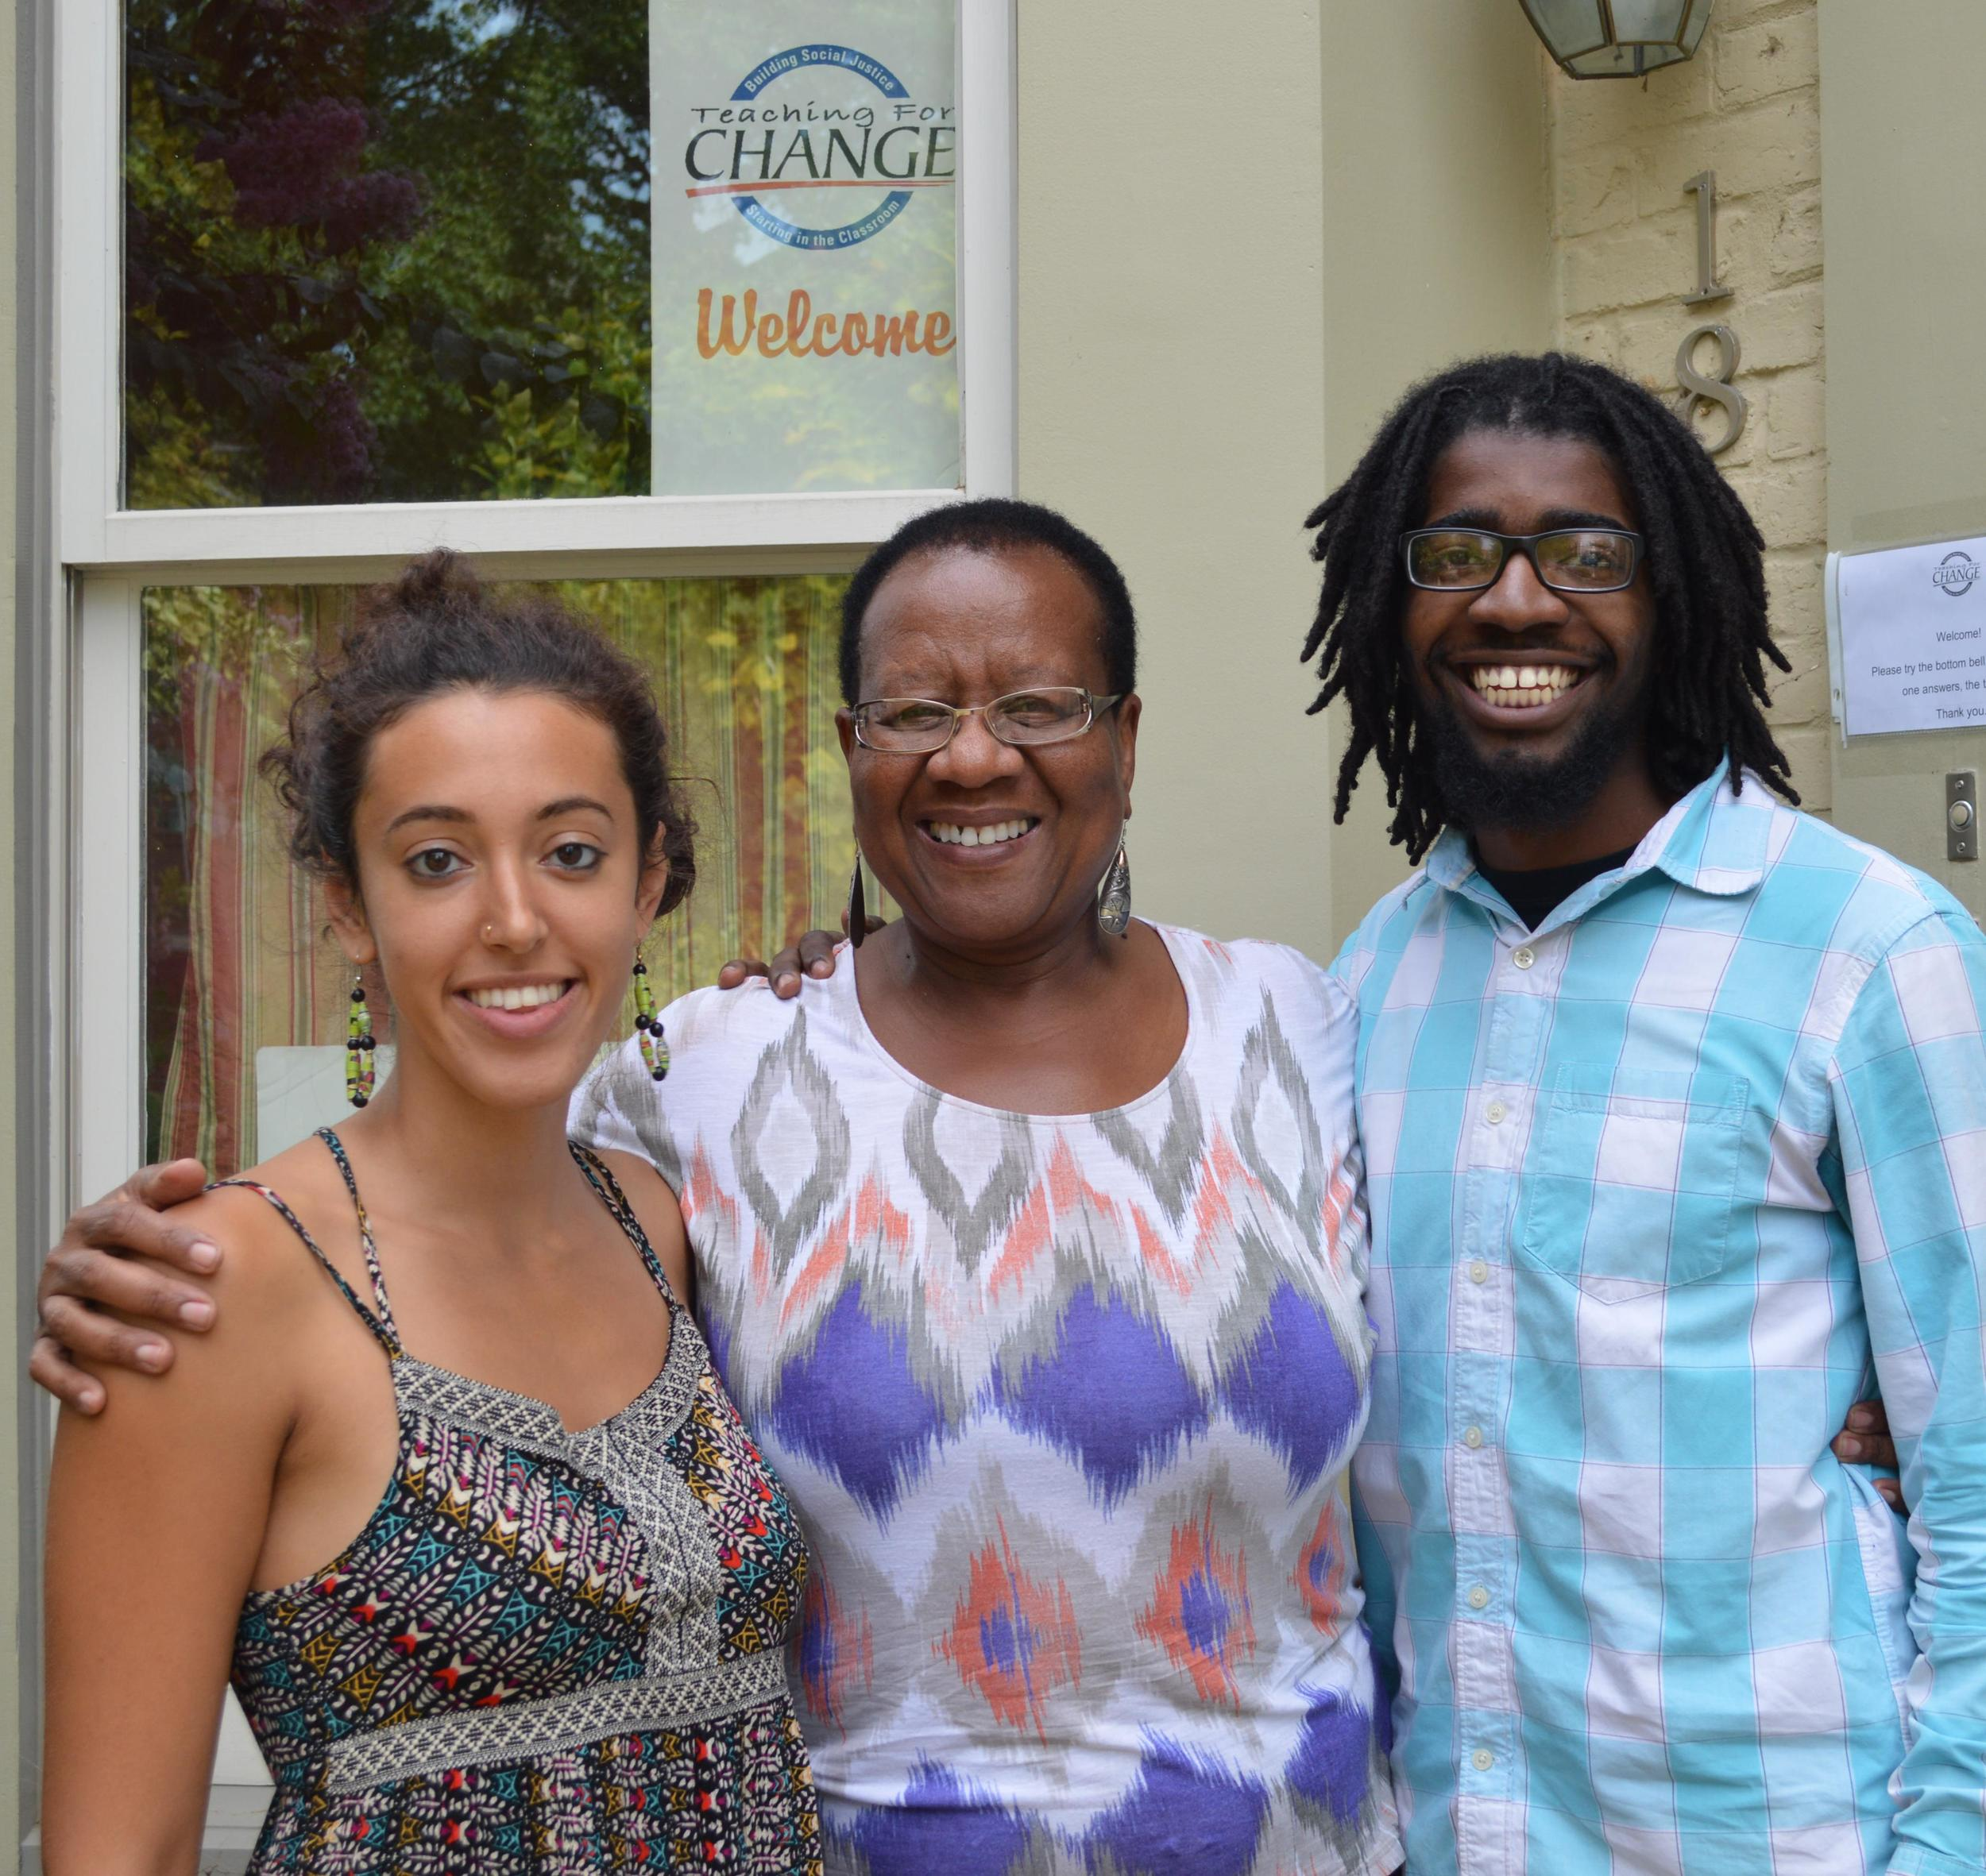 While in D.C., Enid Lee was interviewed by education students Qiddist Hammerly and Mansur buffins.